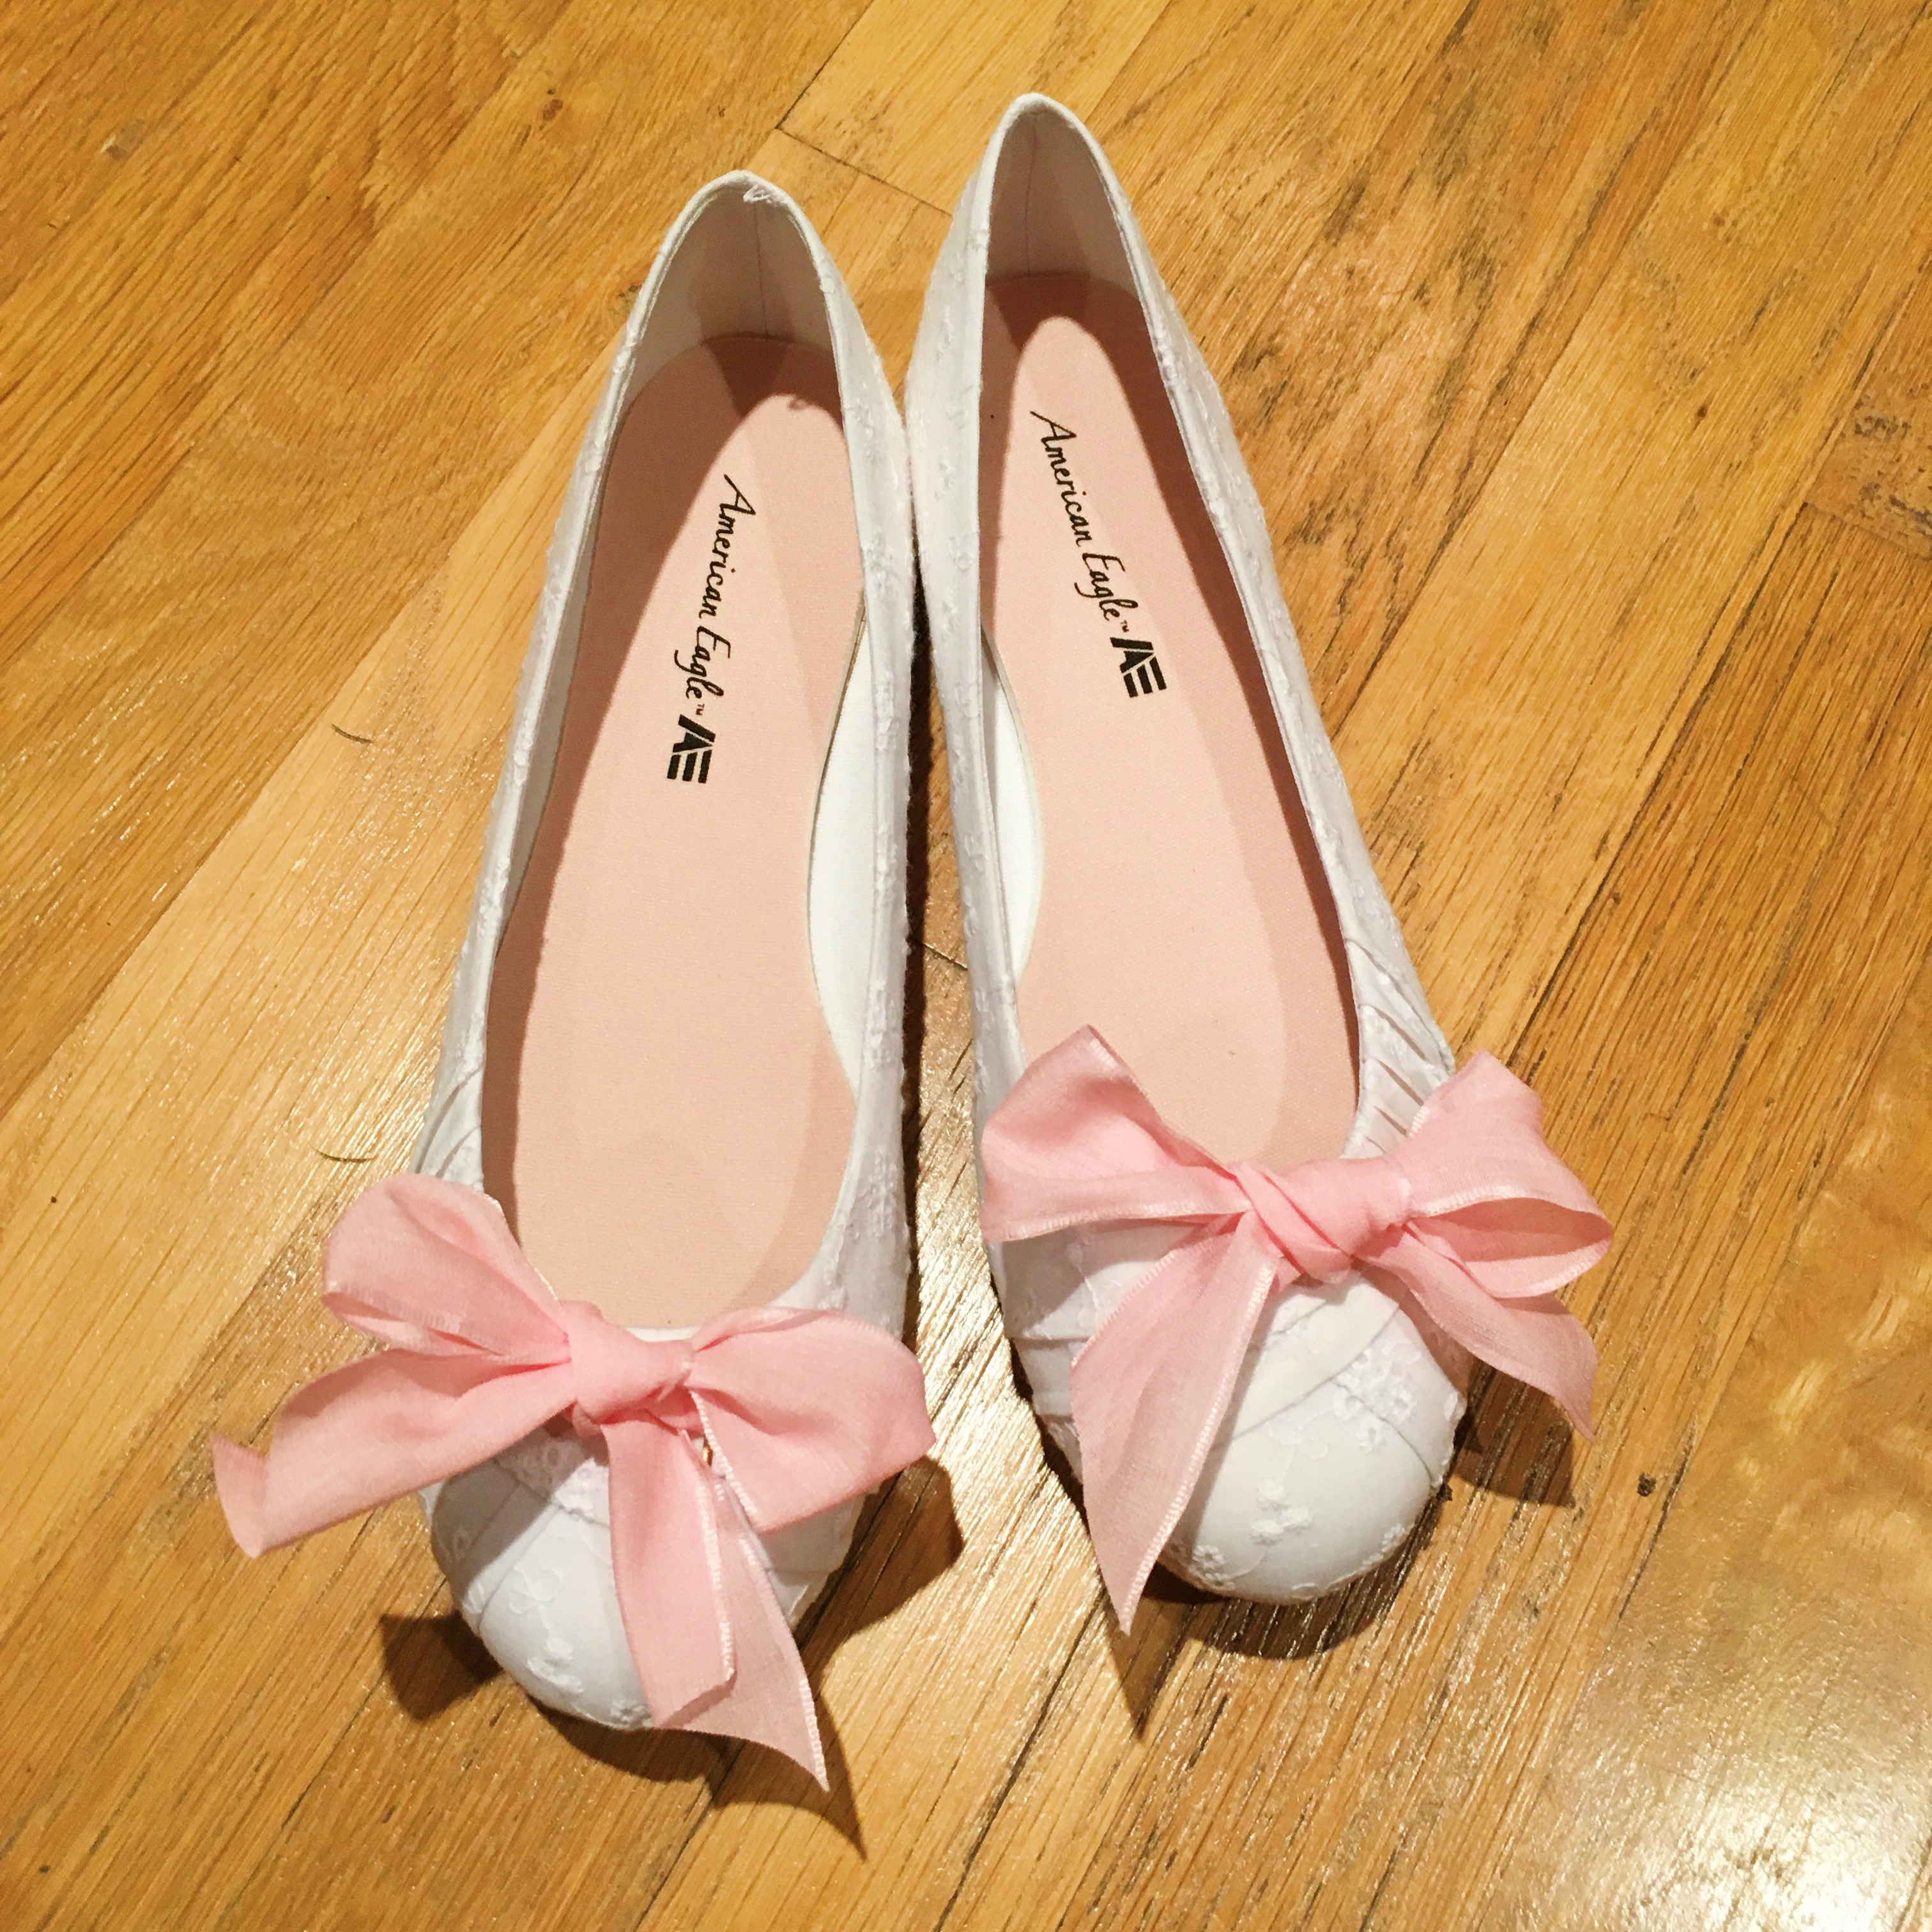 Shoes with Bows!